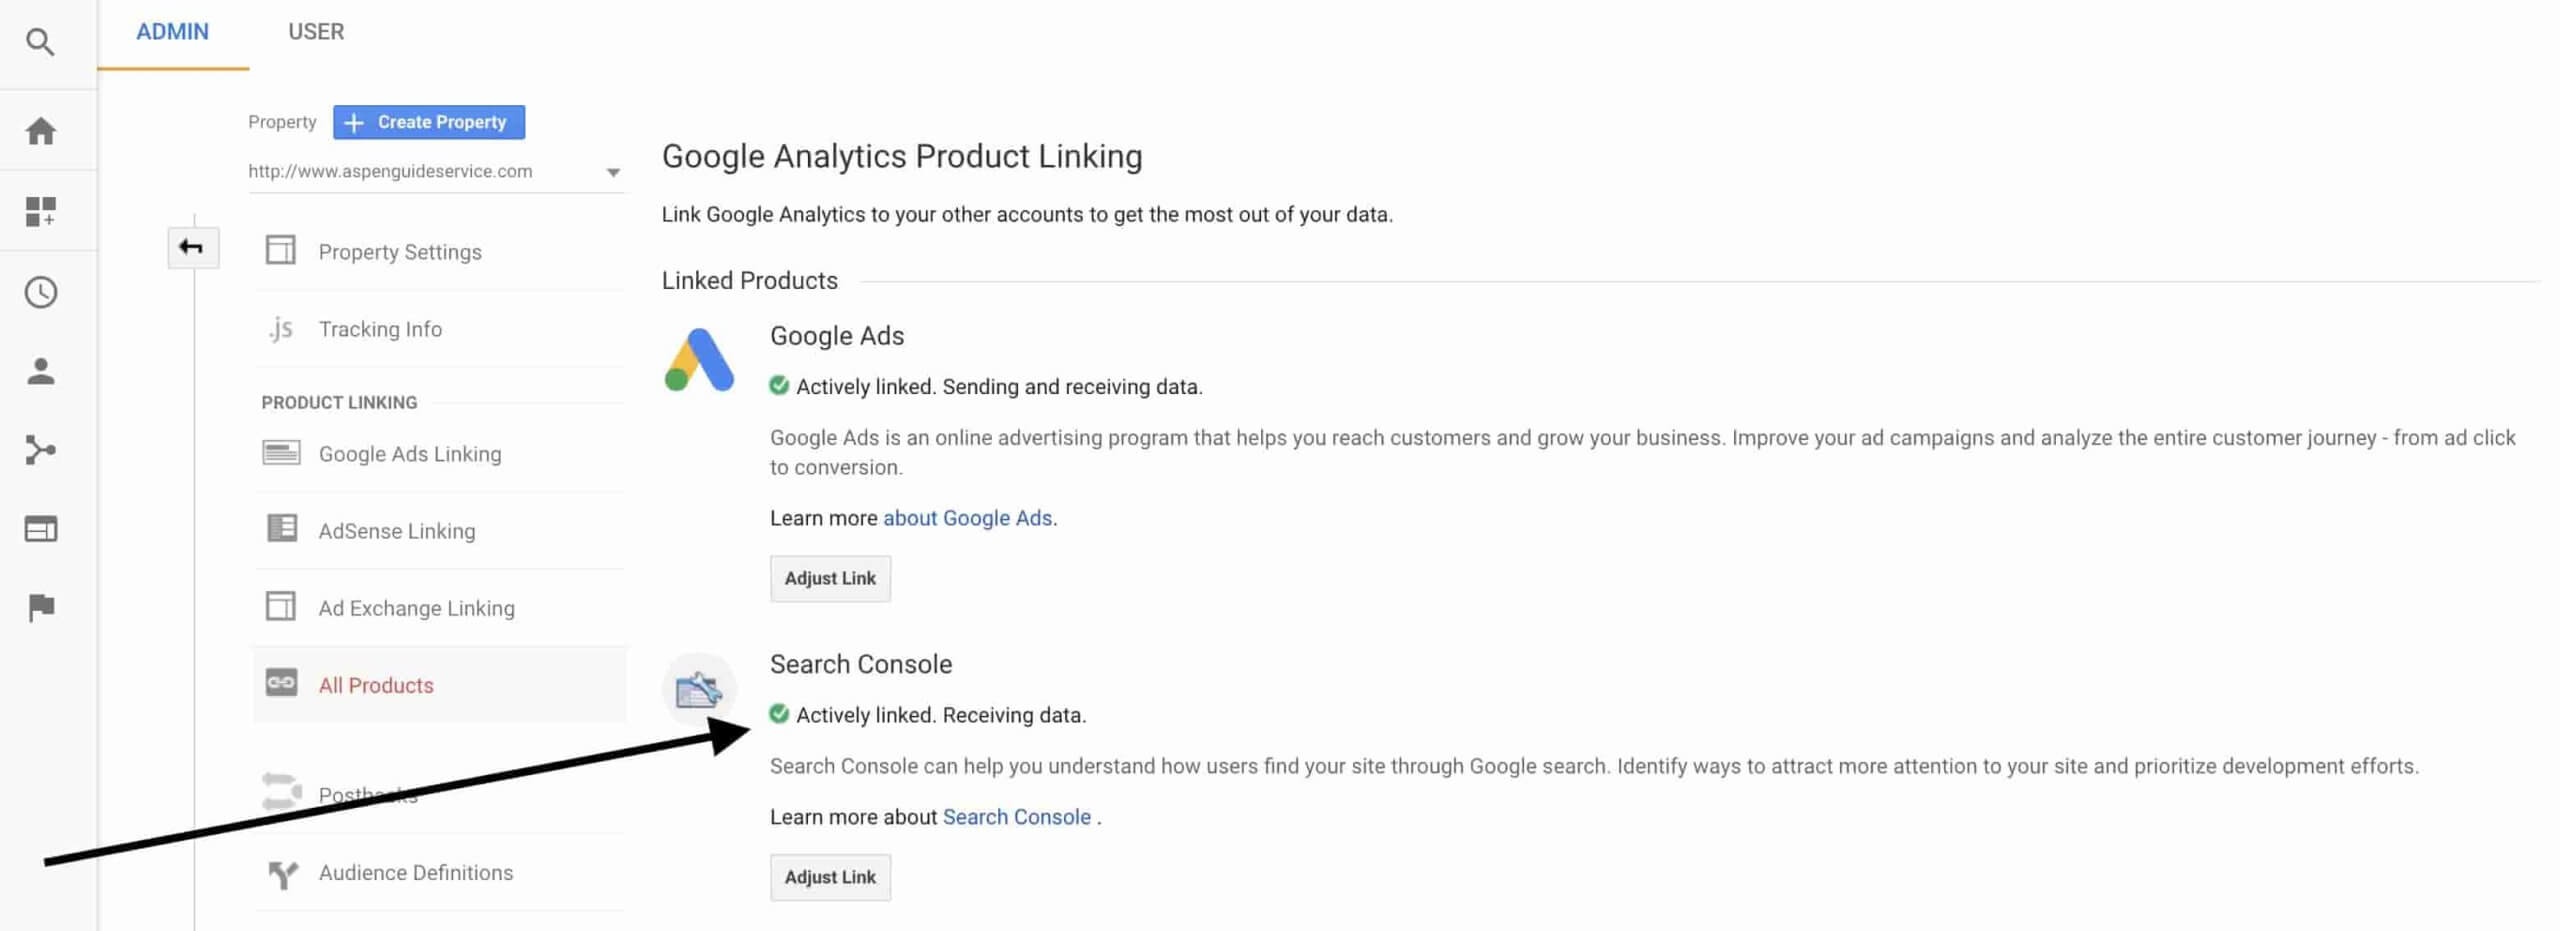 link-google-analytics-to-search-console_Further-Confirmation-min